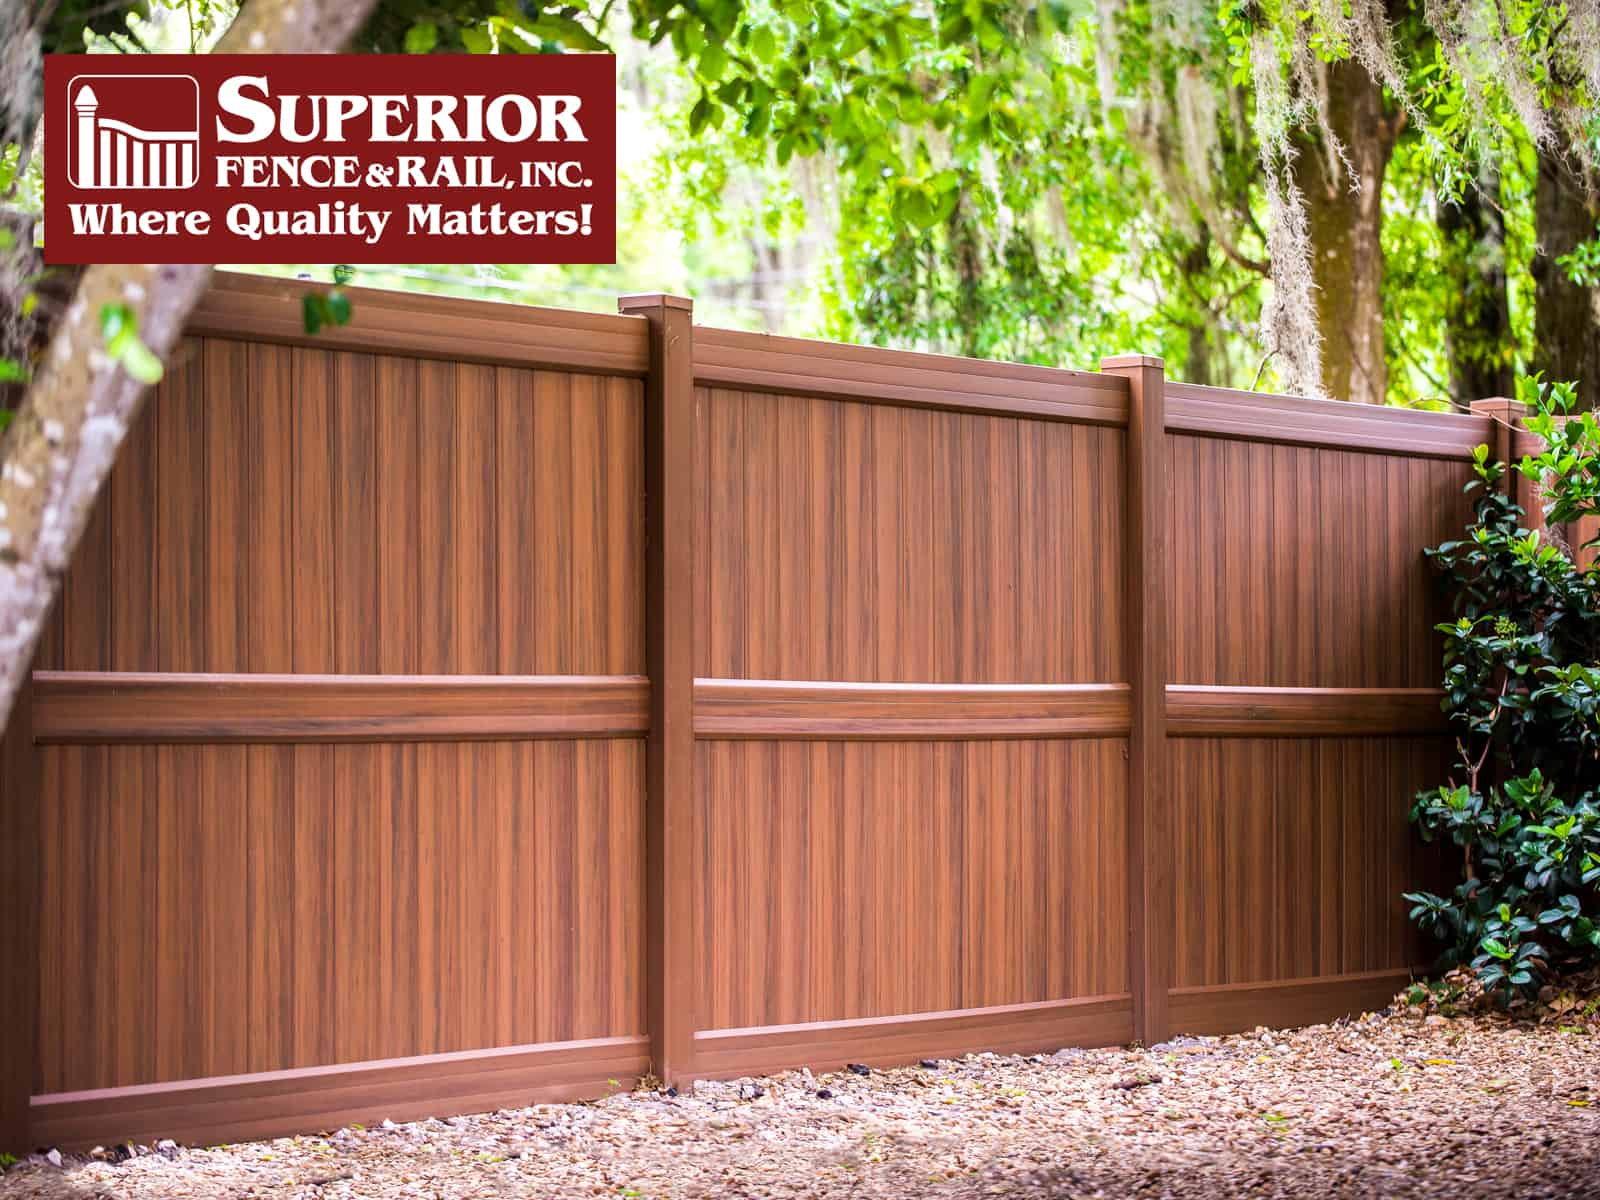 Grand Rapids Fence Company Contractor